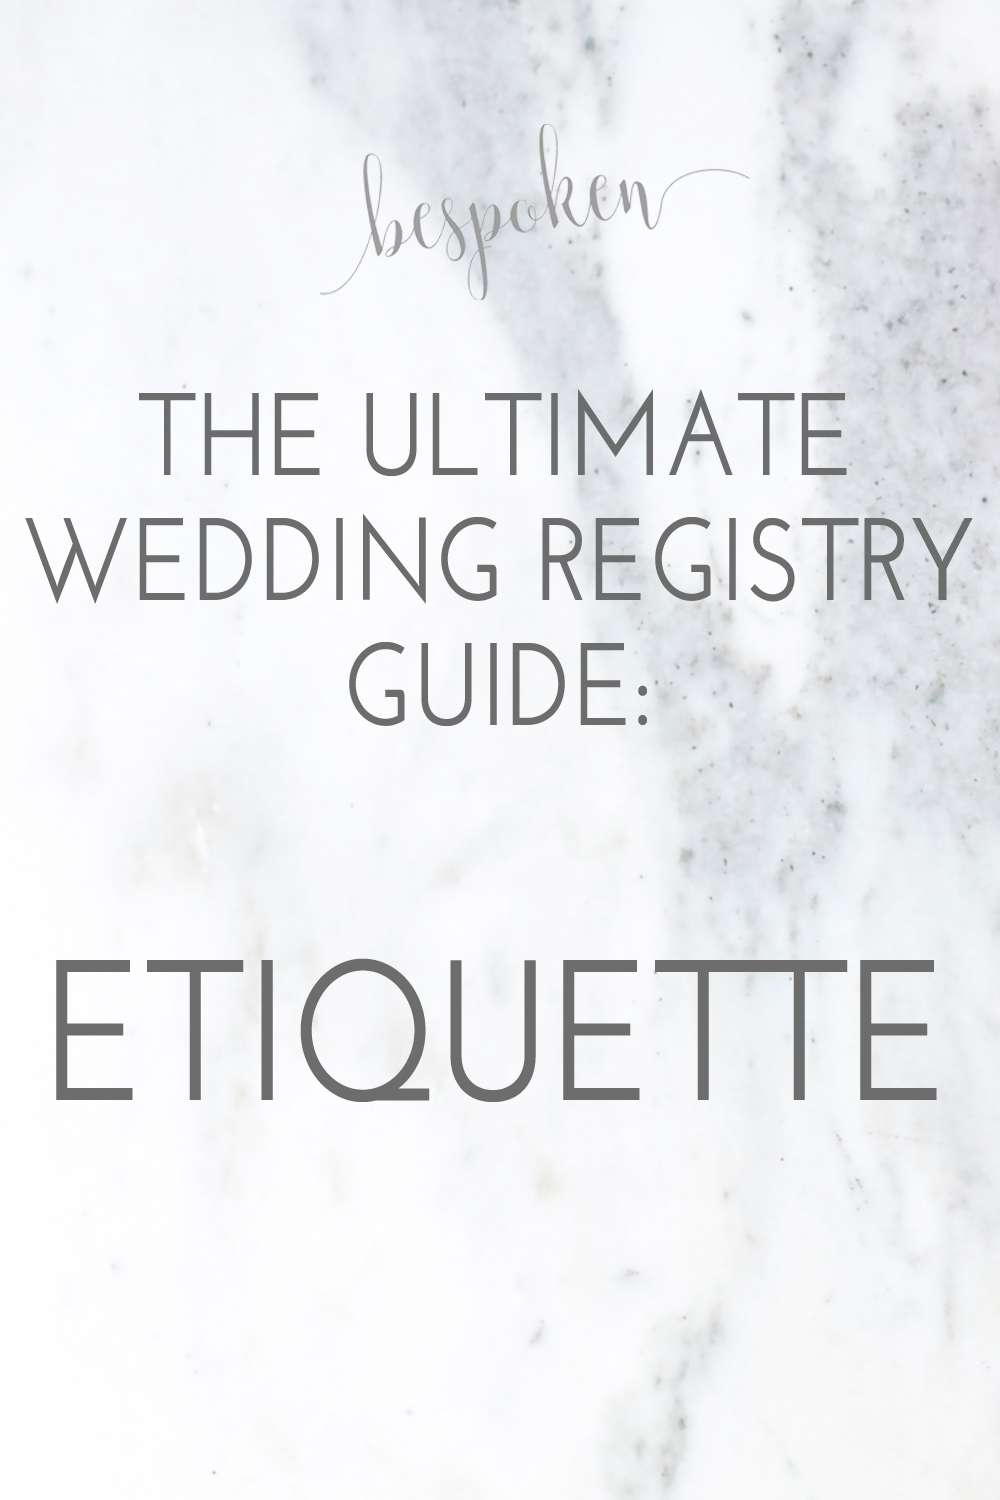 The Ultimate Wedding Registry Guide:  The Etiquette | Bespoken www.bespokenweddings.com